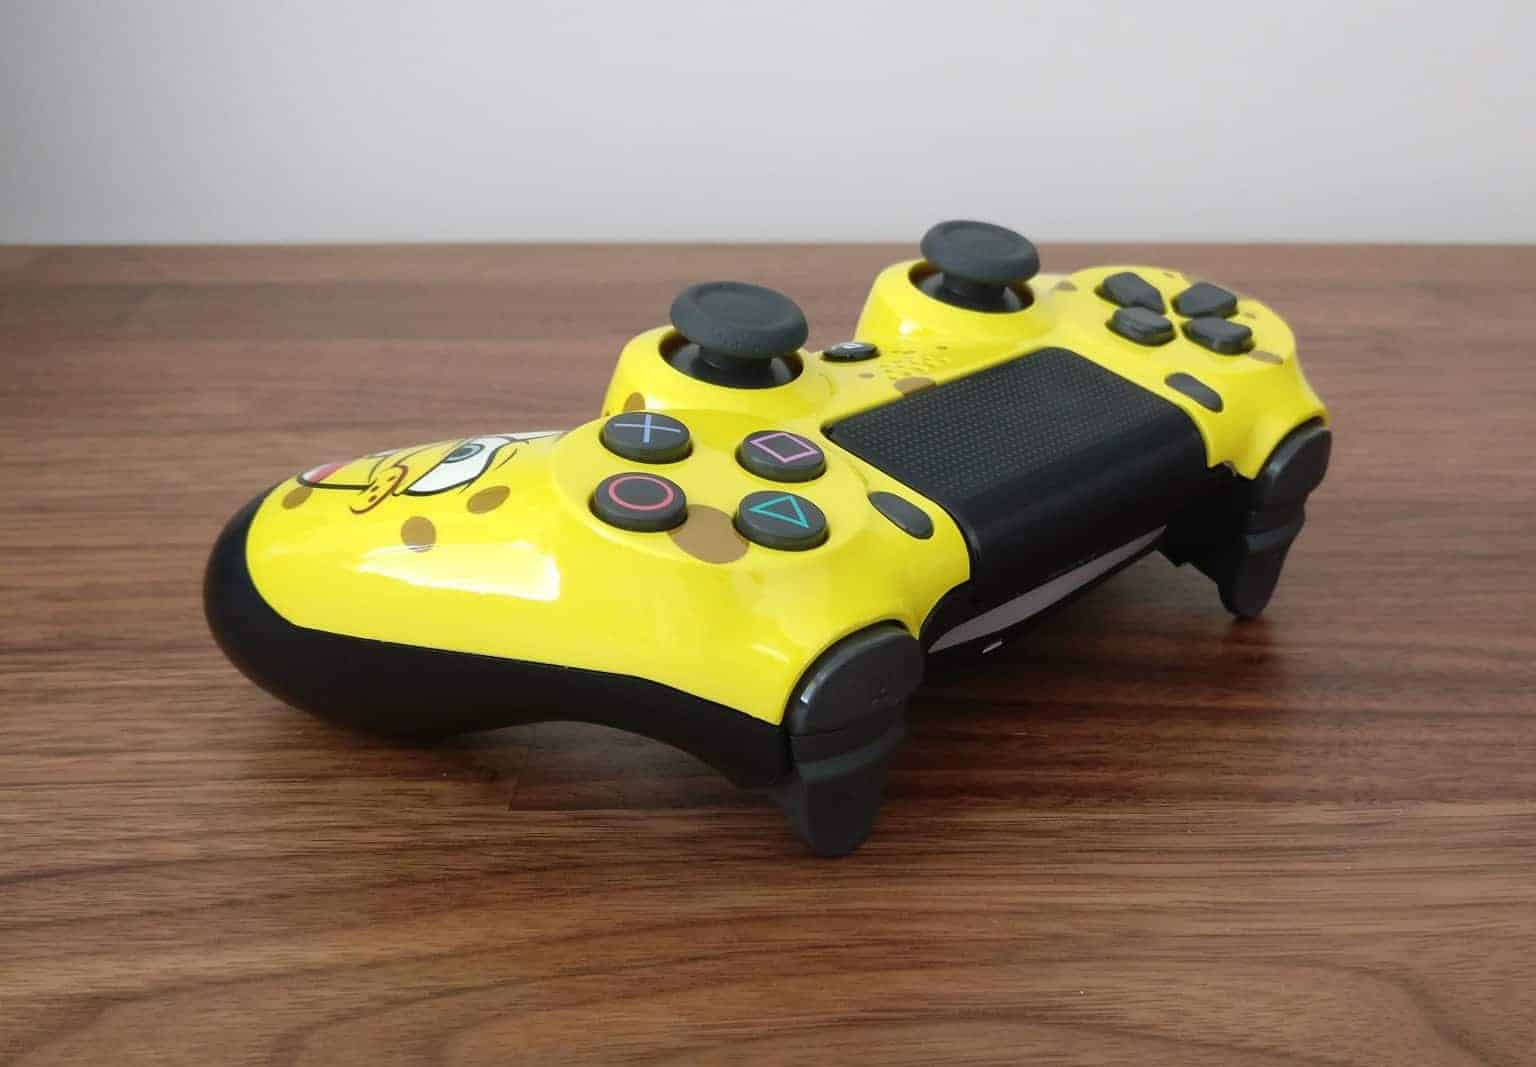 mega-modz-planey-ps4-Photos-11 Mega Modz Planet Modded PS4 and Xbox One Controller Review